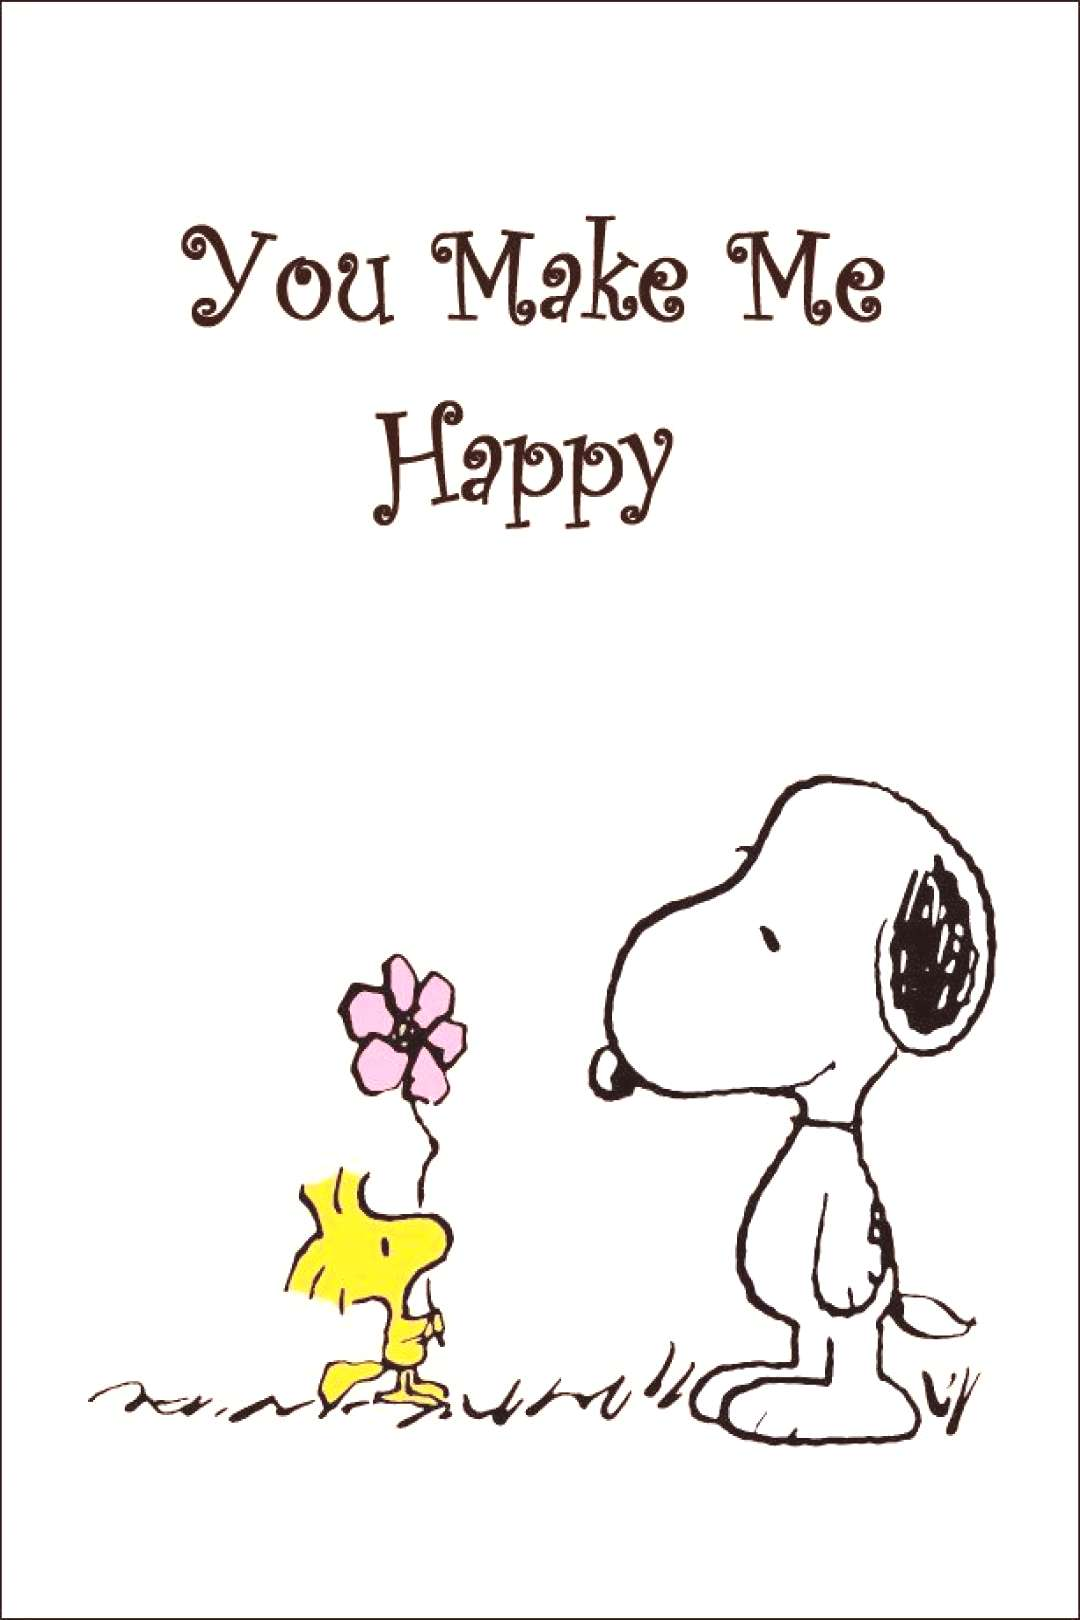 Snoopy And Woodstock Collectible Peanuts quotYou Make Me Happyquot Stand-Up Display - Other